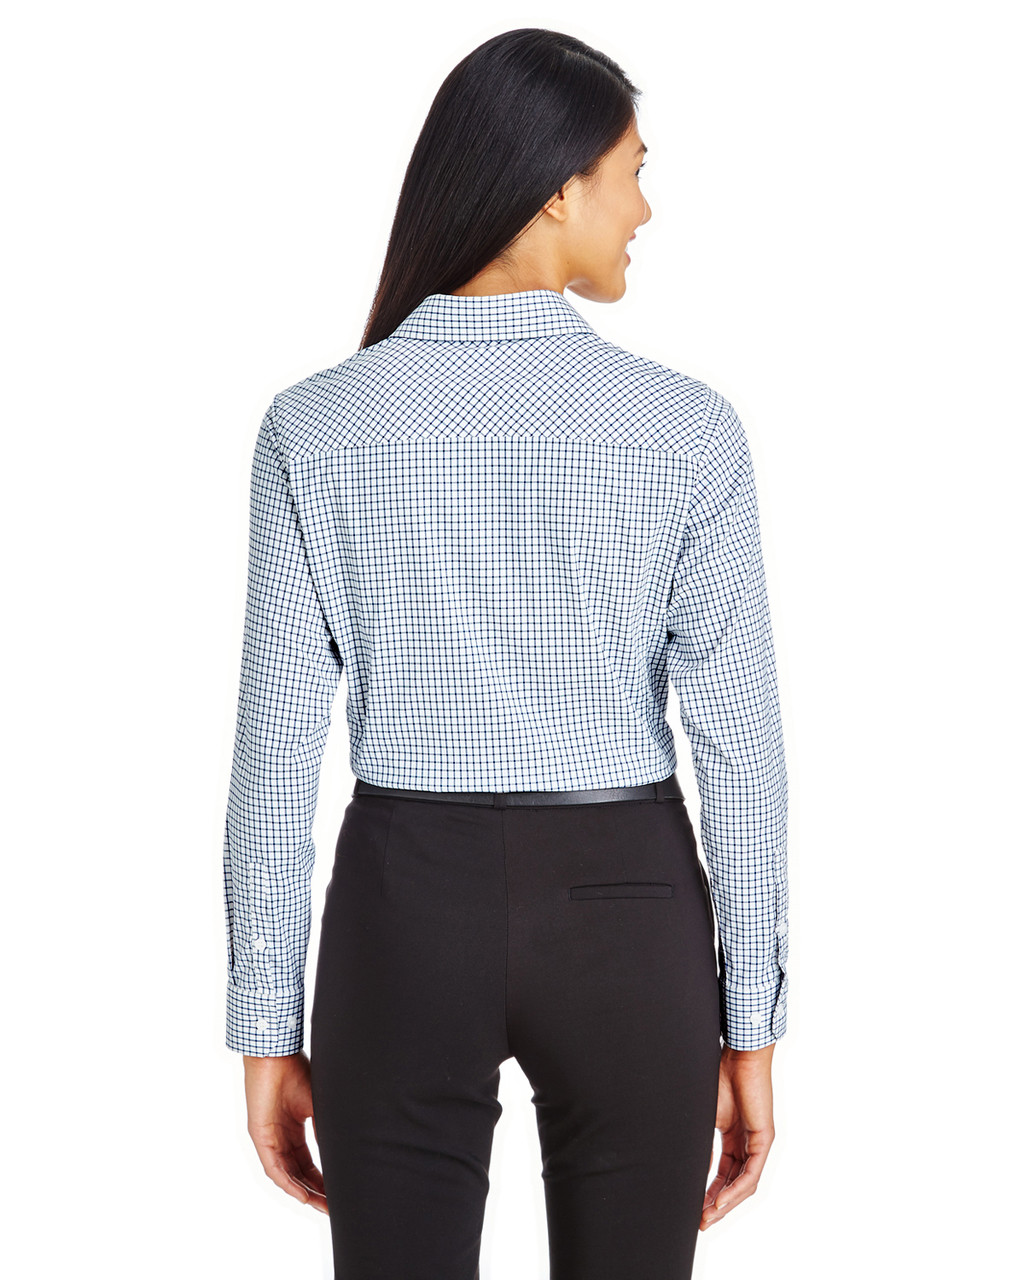 Navy/White - DG540W Devon & Jones Ladies' CrownLux Performance™ Micro Windowpane Shirt